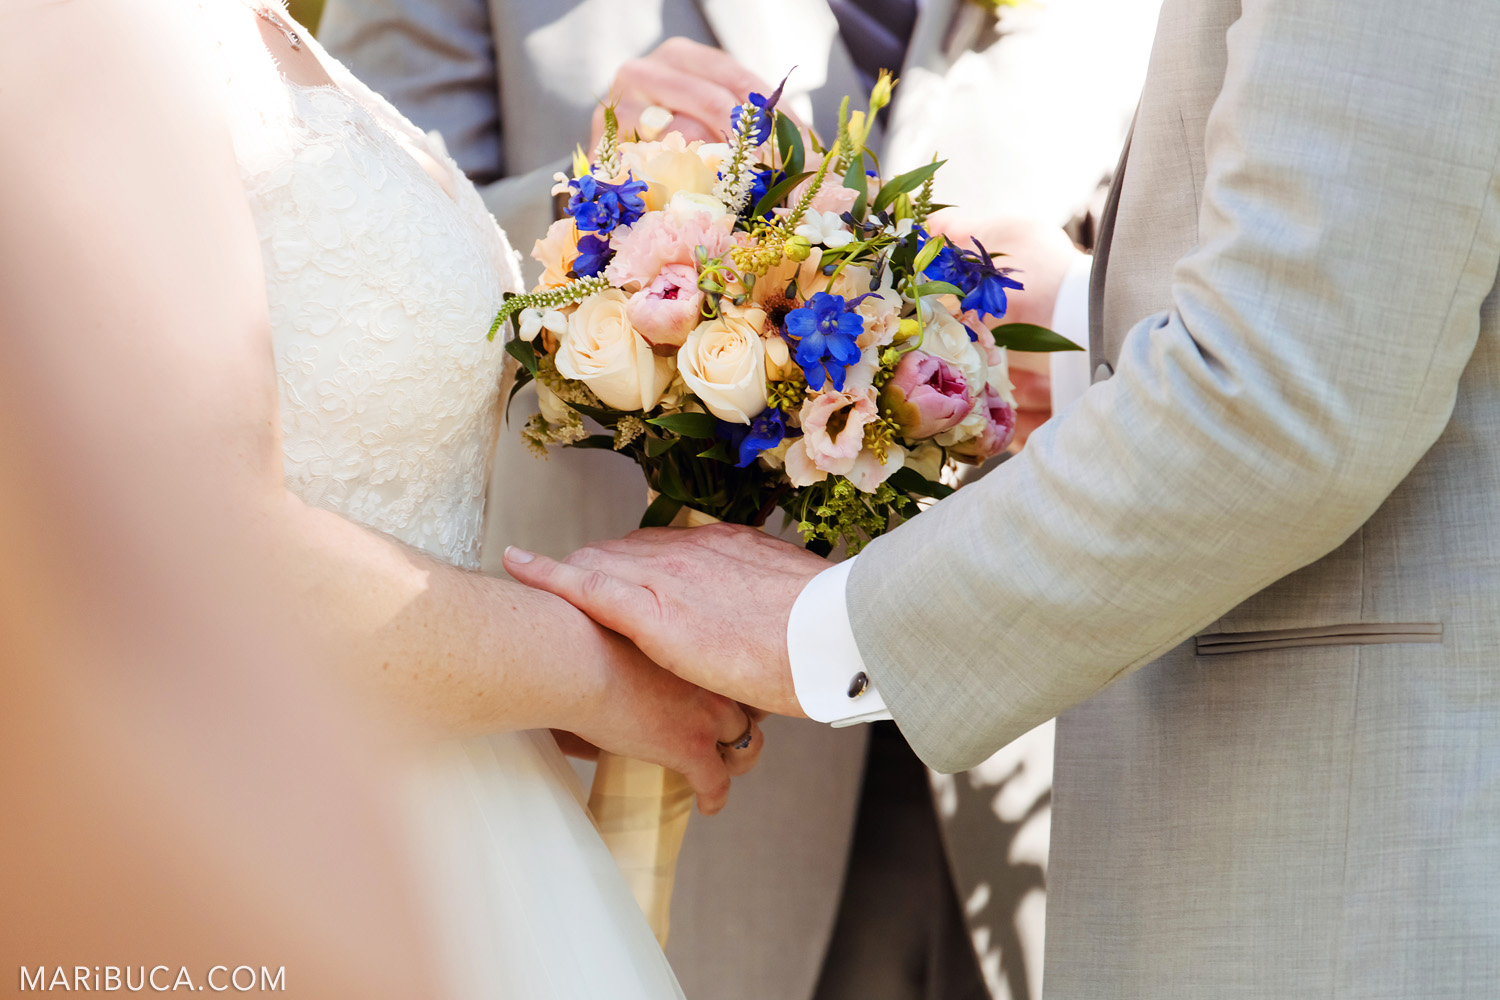 The groom holds bride's hand during the wedding ceremony and the bride holds her colorful wedding bouquet in the in the Saratoga Springs Venue